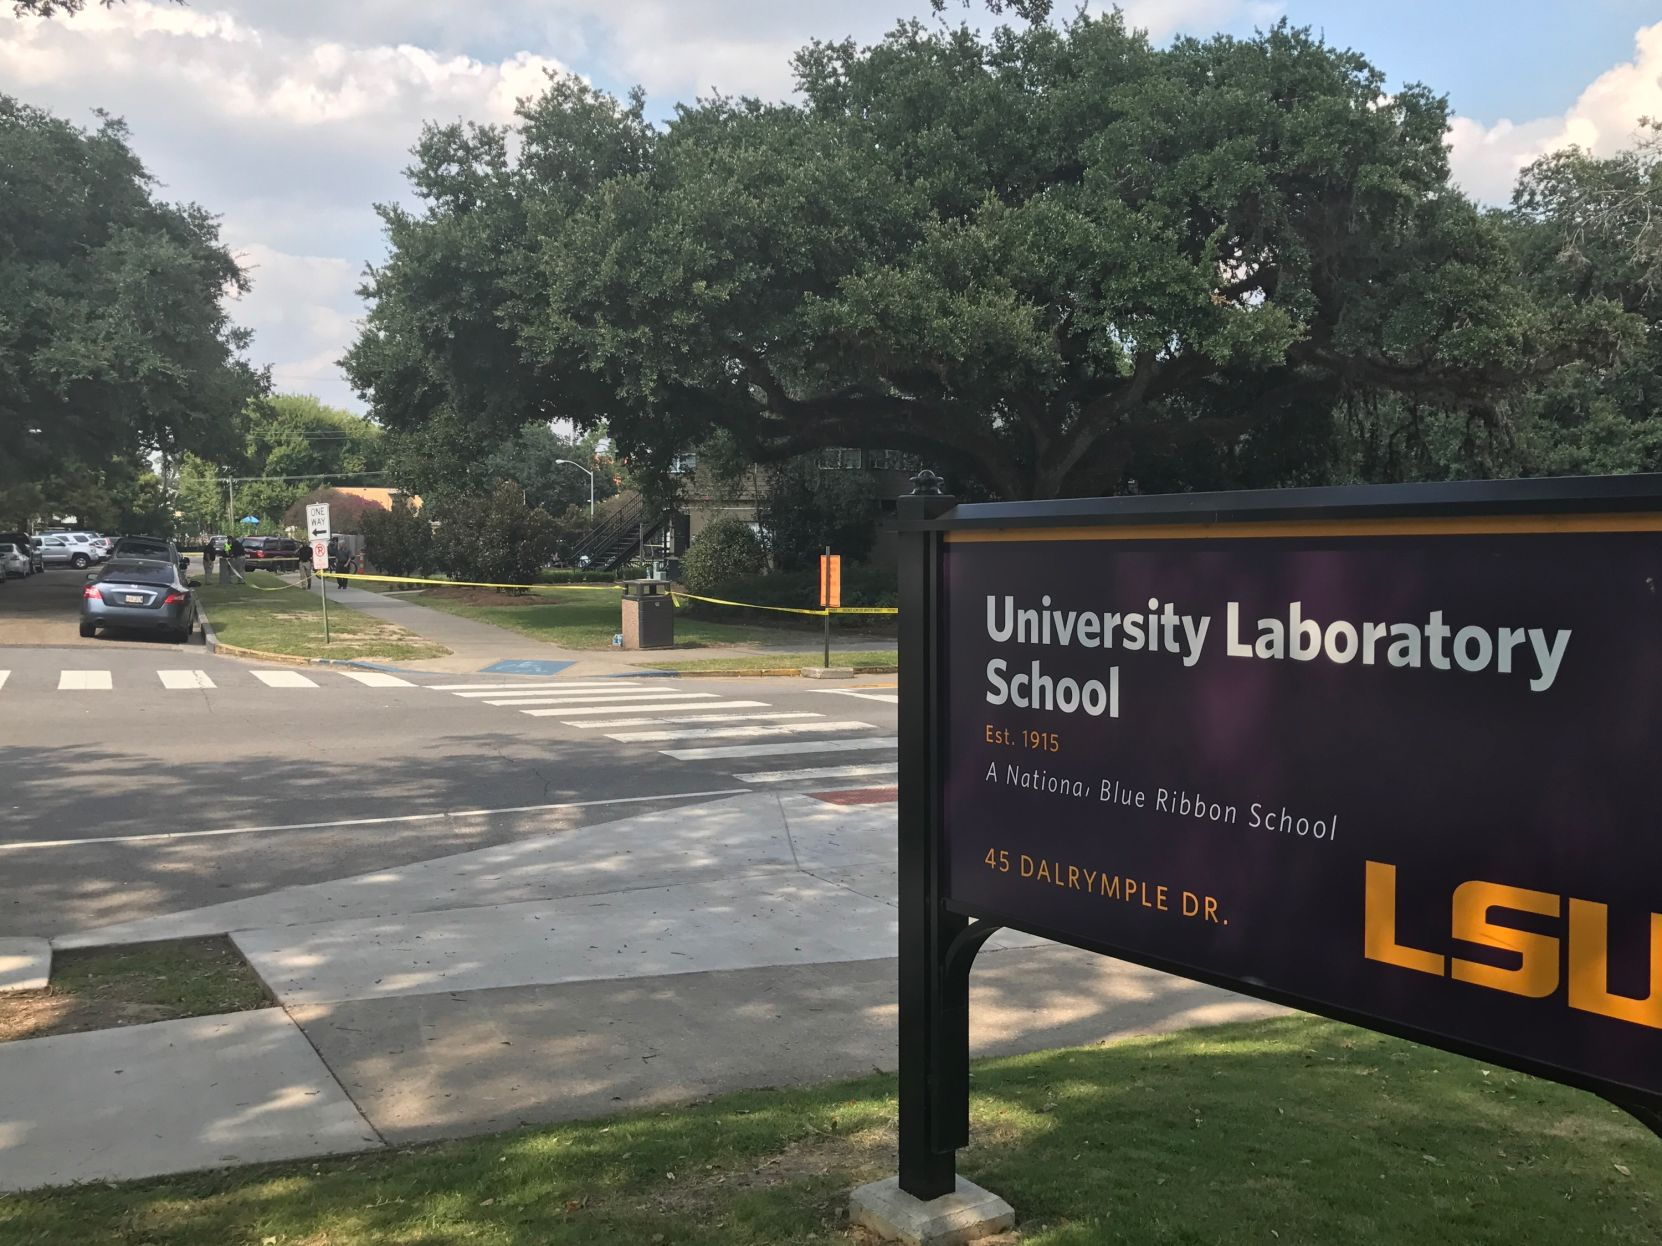 One person dies after being taken from LSU fraternity house to hospital